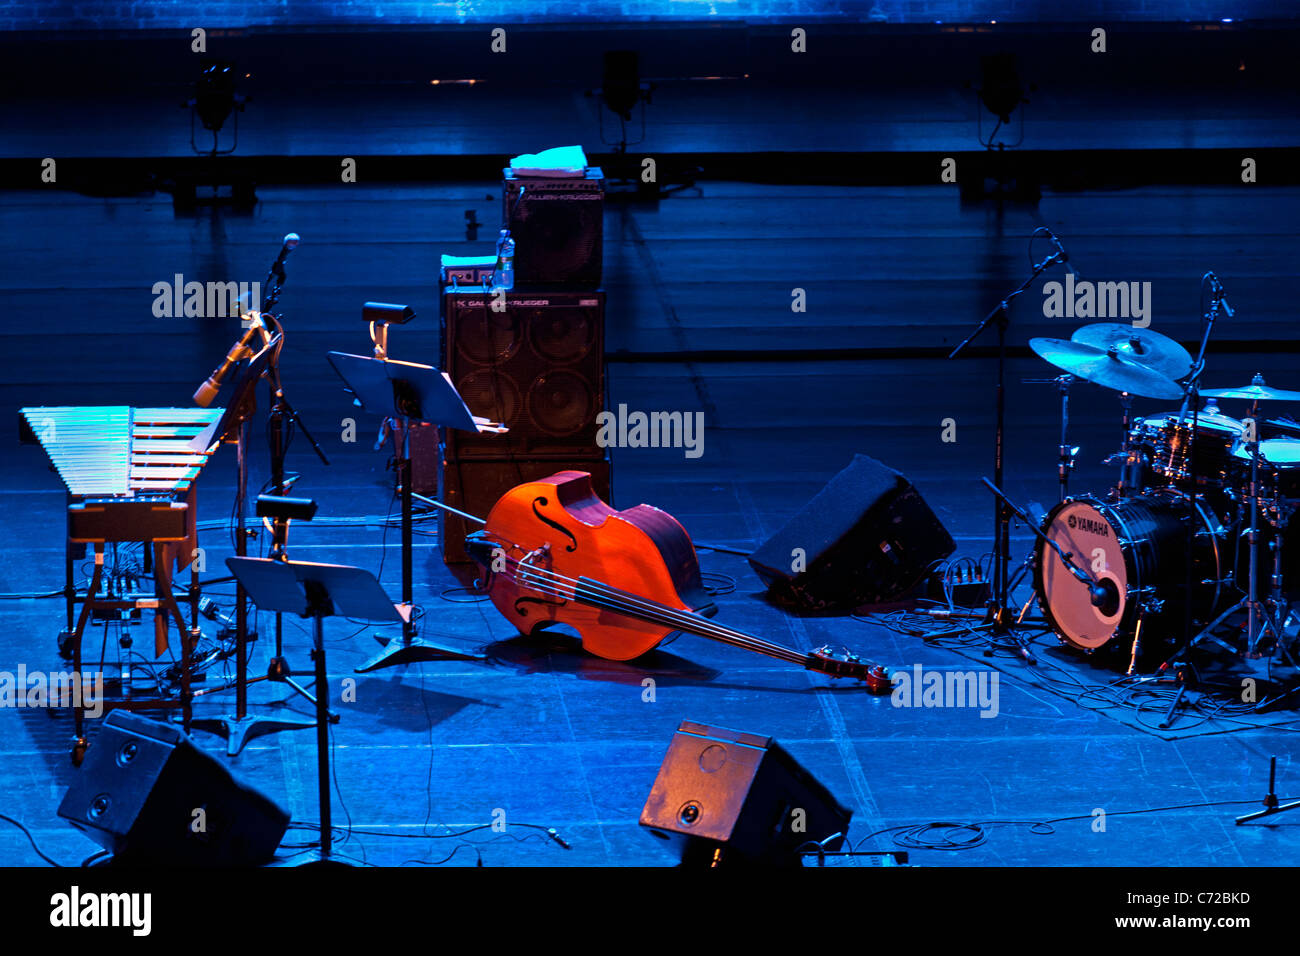 Canada,Quebec,Montreal, Montreal Jazz Festival, stage with musical instruments - Stock Image